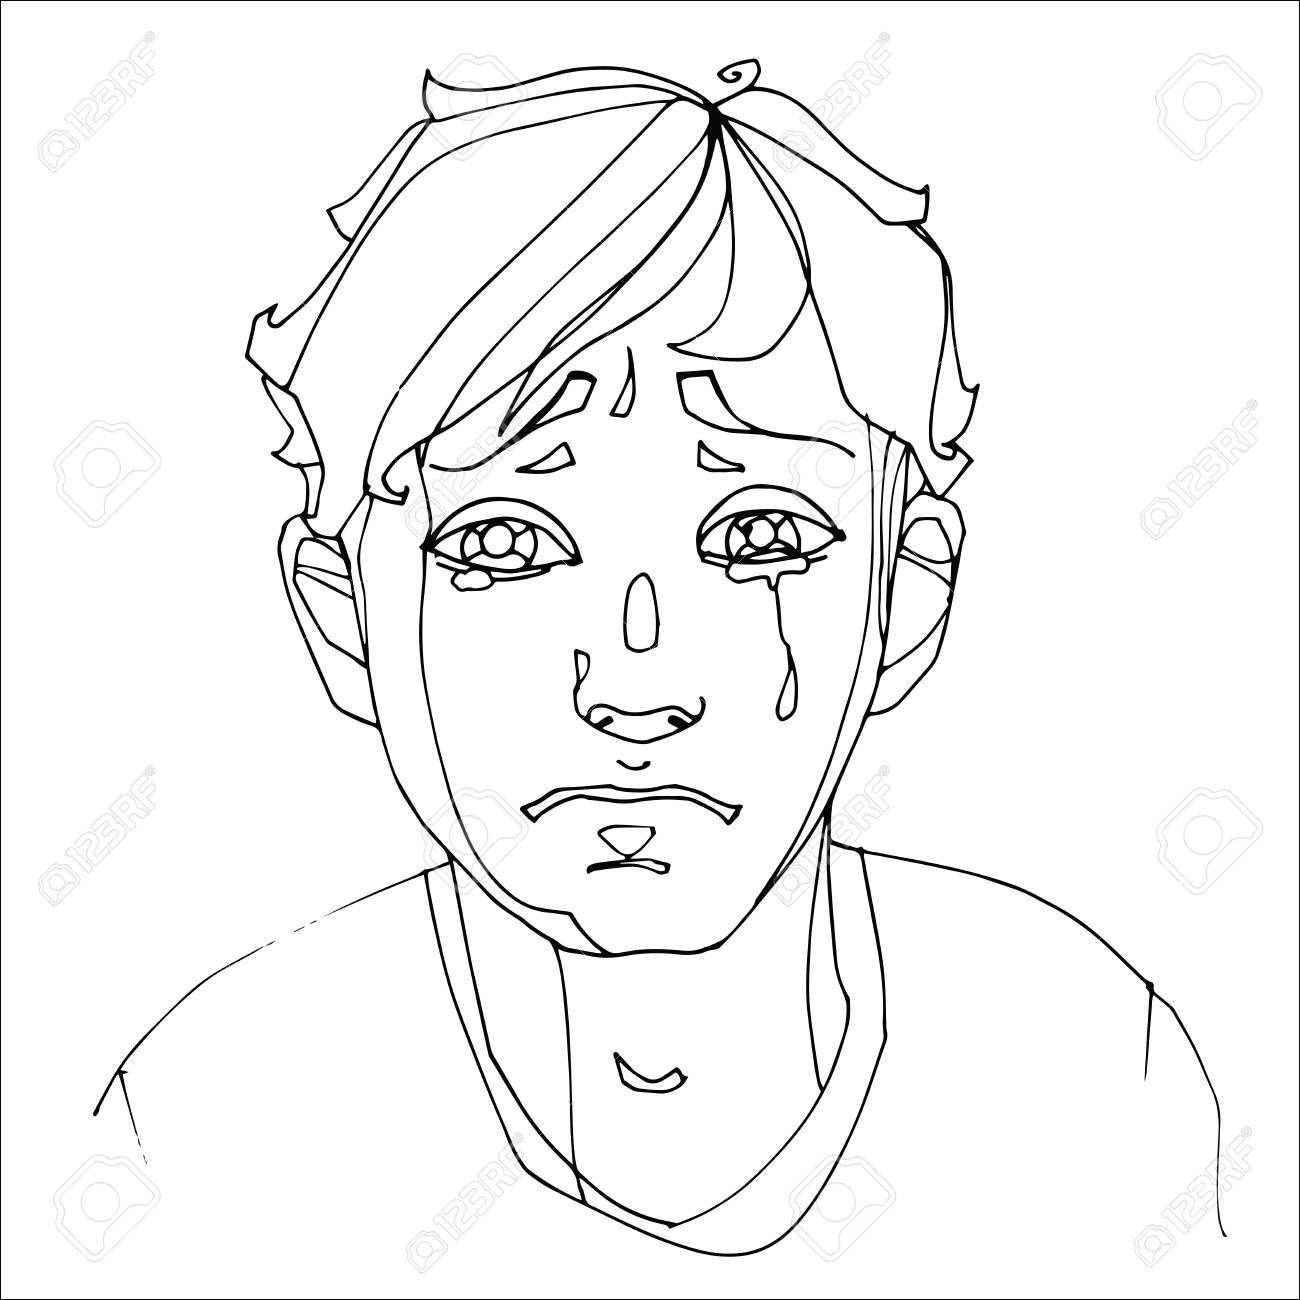 1300x1300 The Boy Crying Heavily, Human Emotions. Sketch Hand Drawing